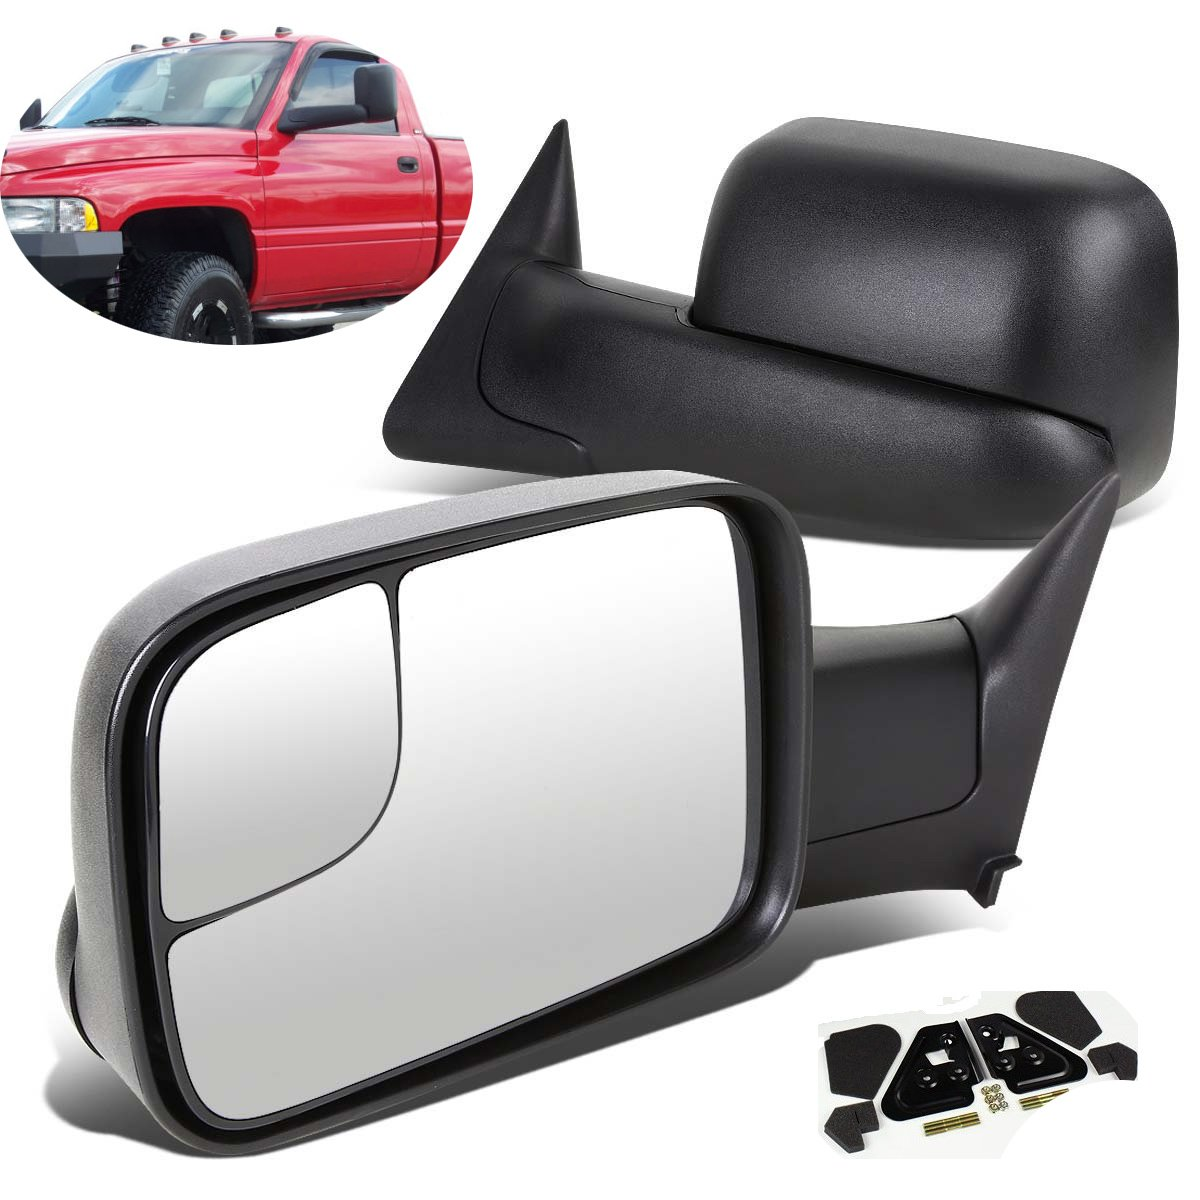 SCITOO Driver and Passenger Manual Side Tow Mirrors 7x10 Flip-Up with Mounting Brackets Replacement fit Dodge Pickup Truck 55156335AD 55156334AD by SCITOO